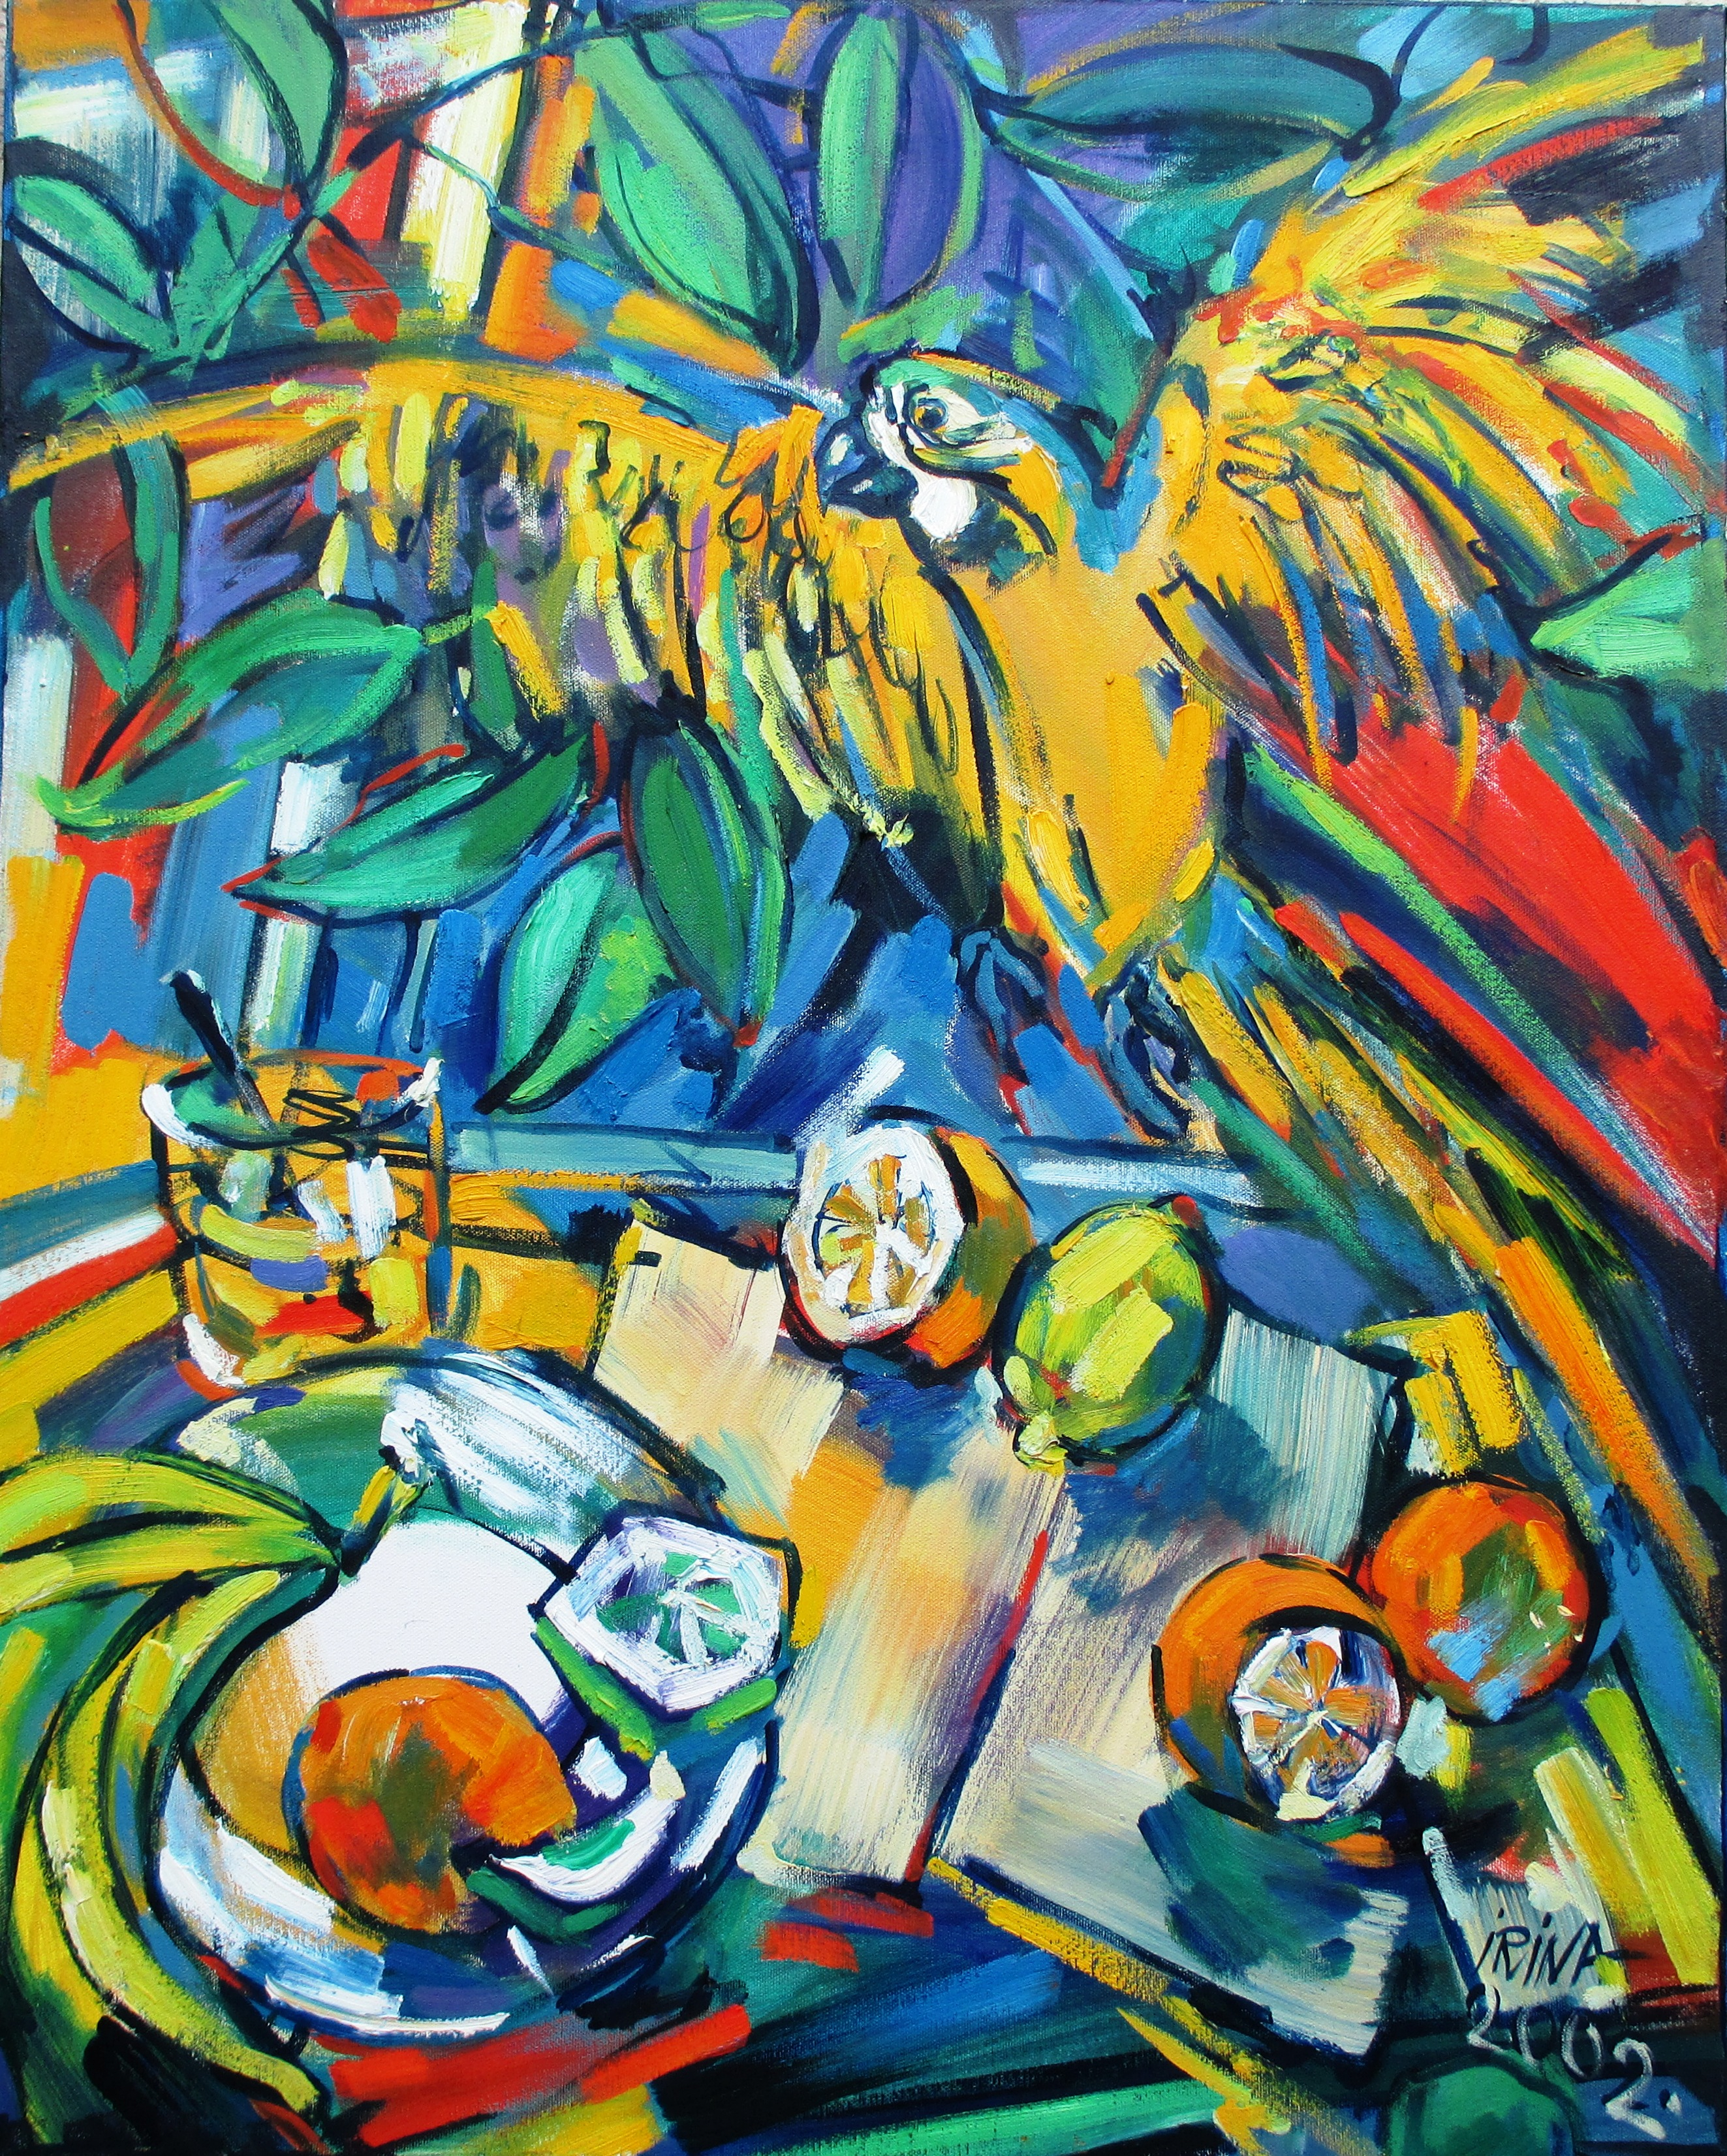 Still Life with Yellow Parrot